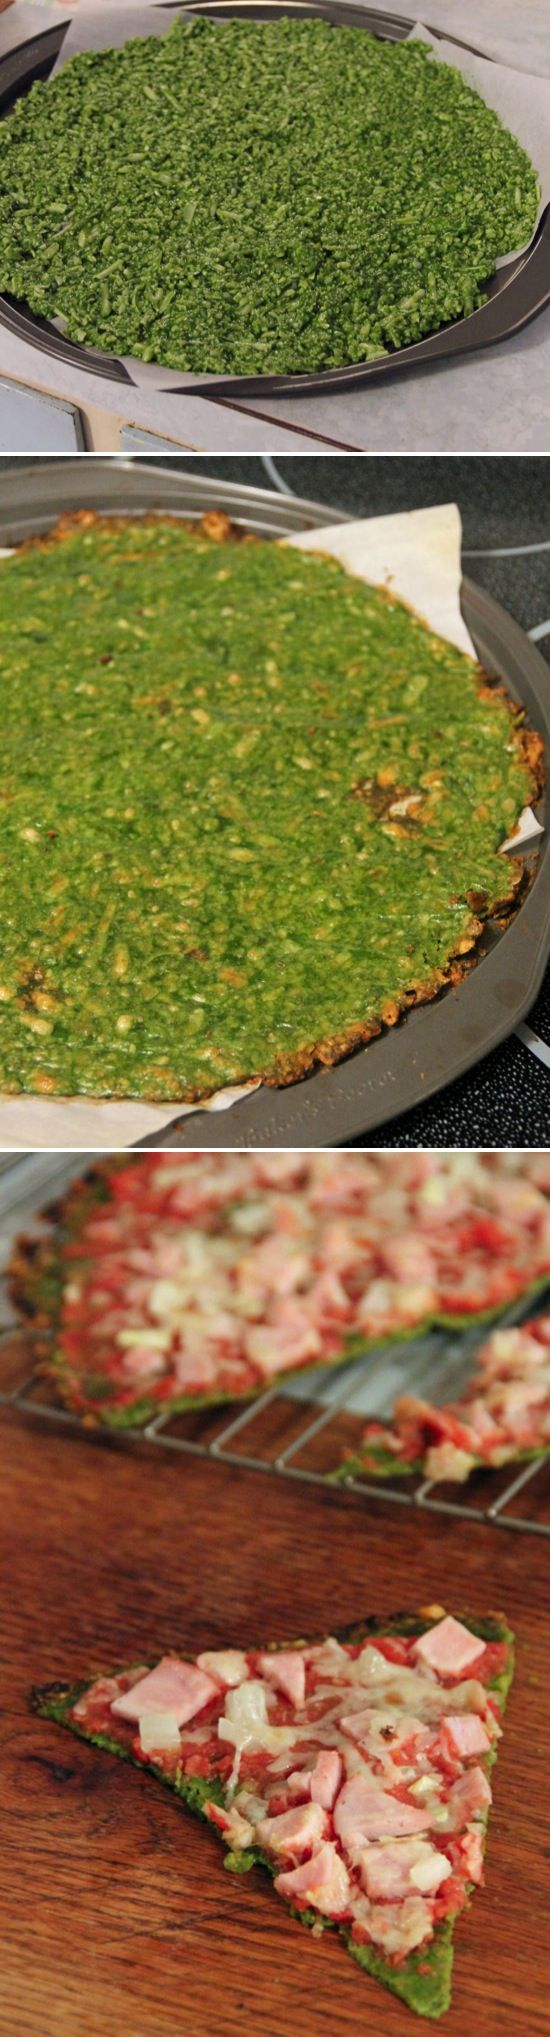 Spinach pizza crust.